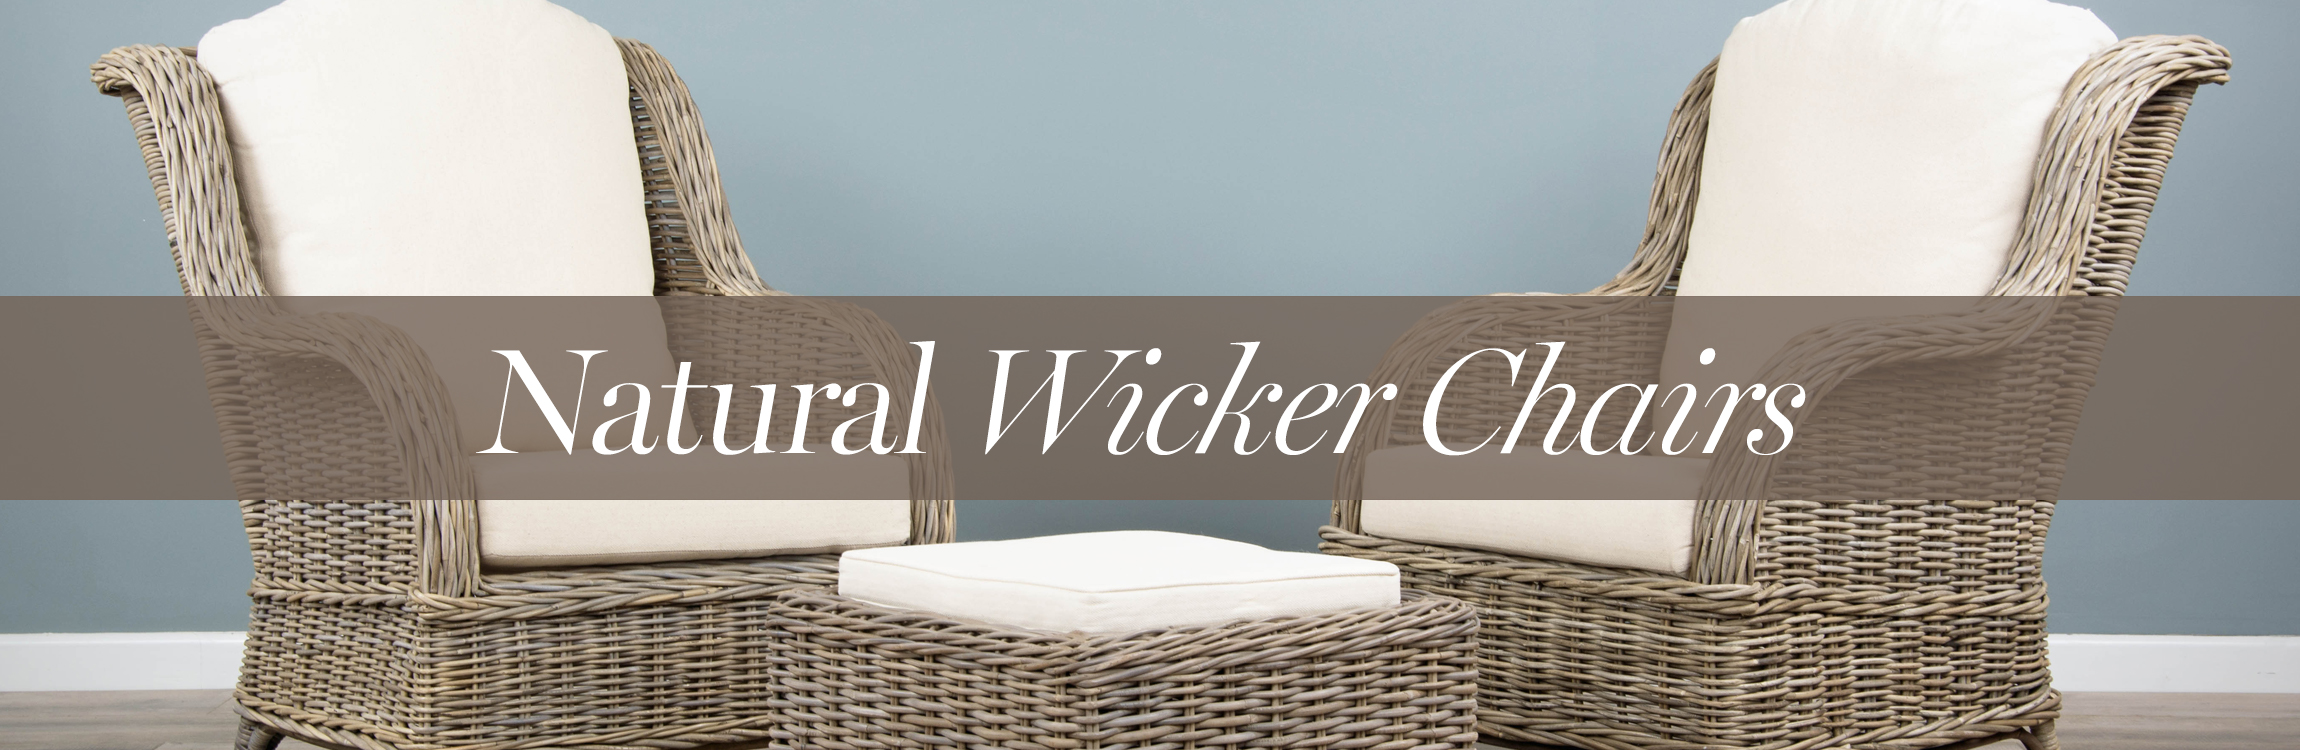 Natural Wicker Chairs